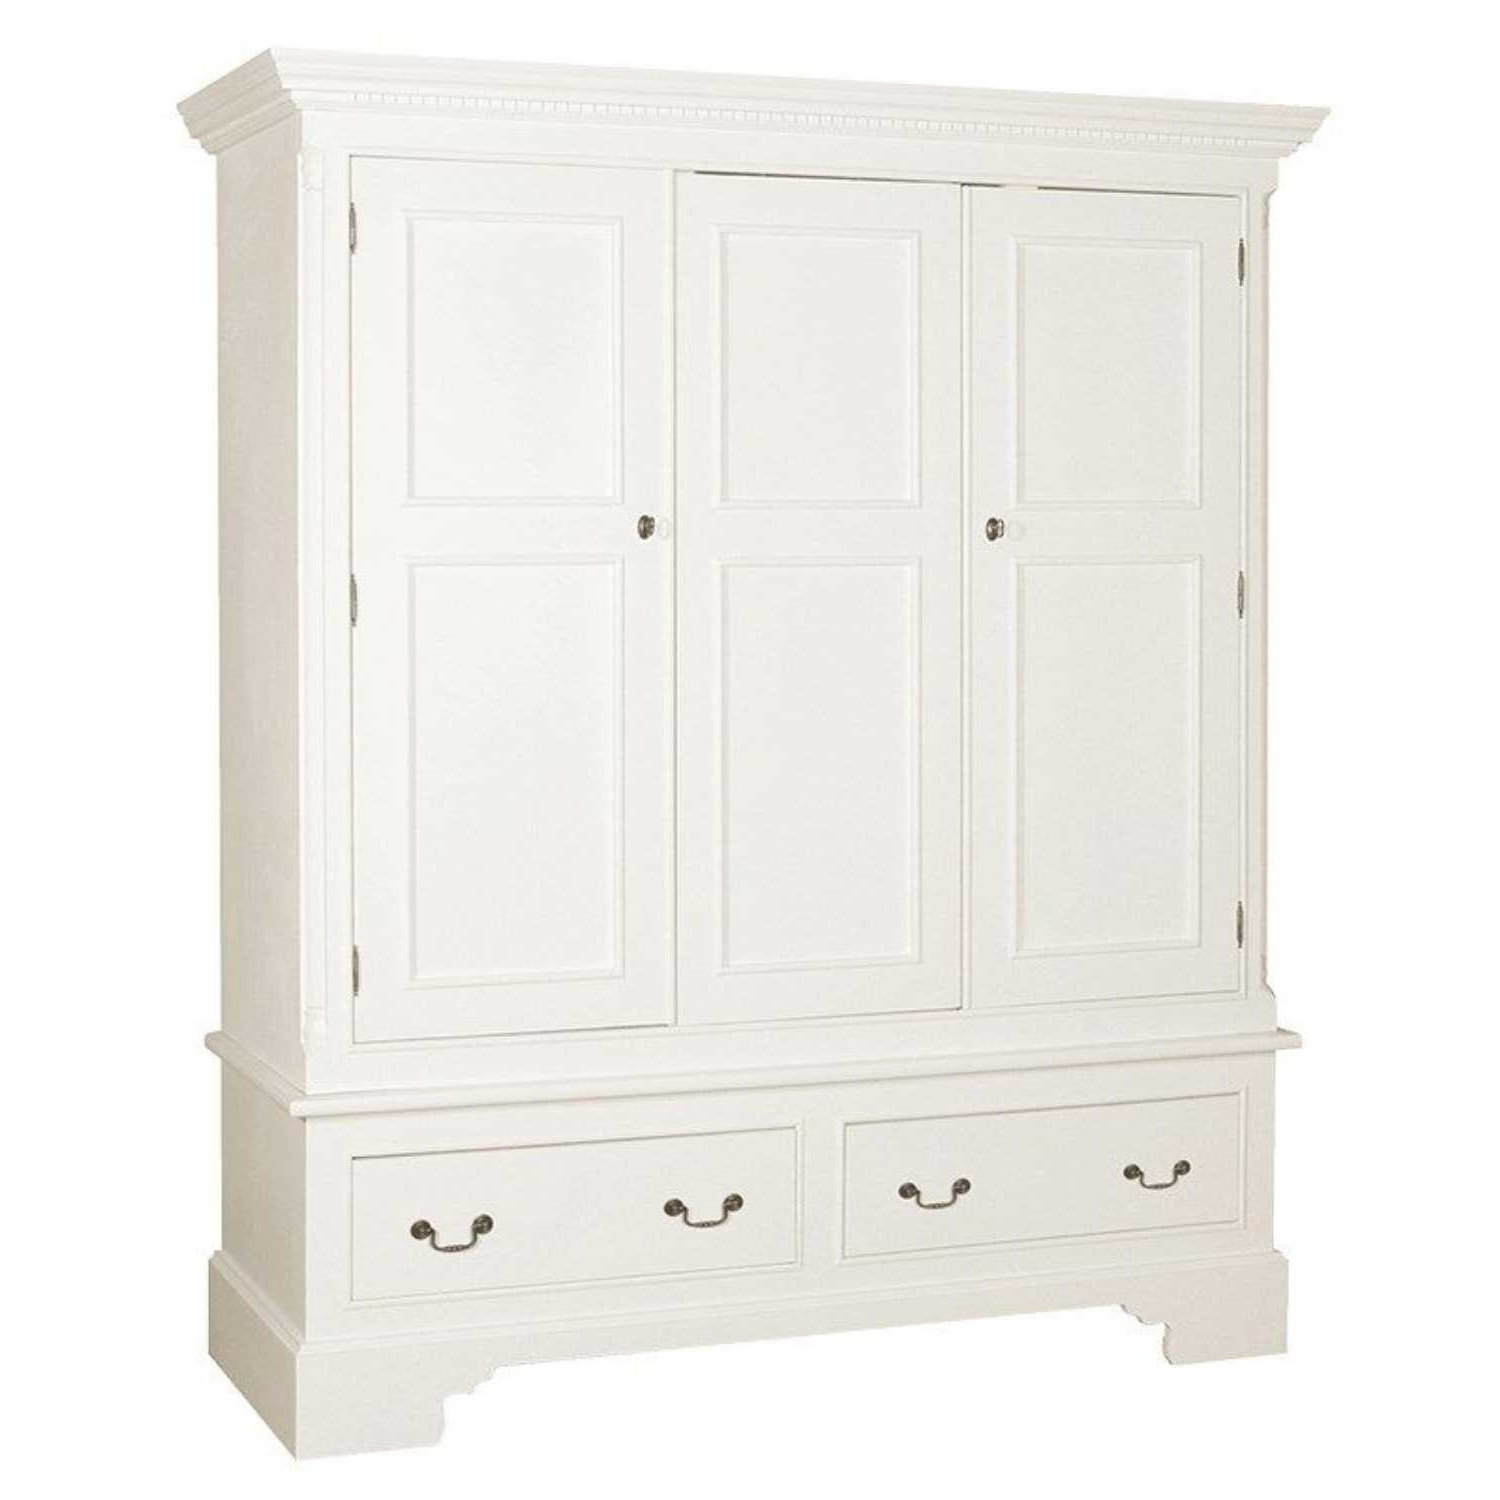 White Shabby Chic Furniture Inside White 3 Door Wardrobes With Drawers (View 15 of 15)